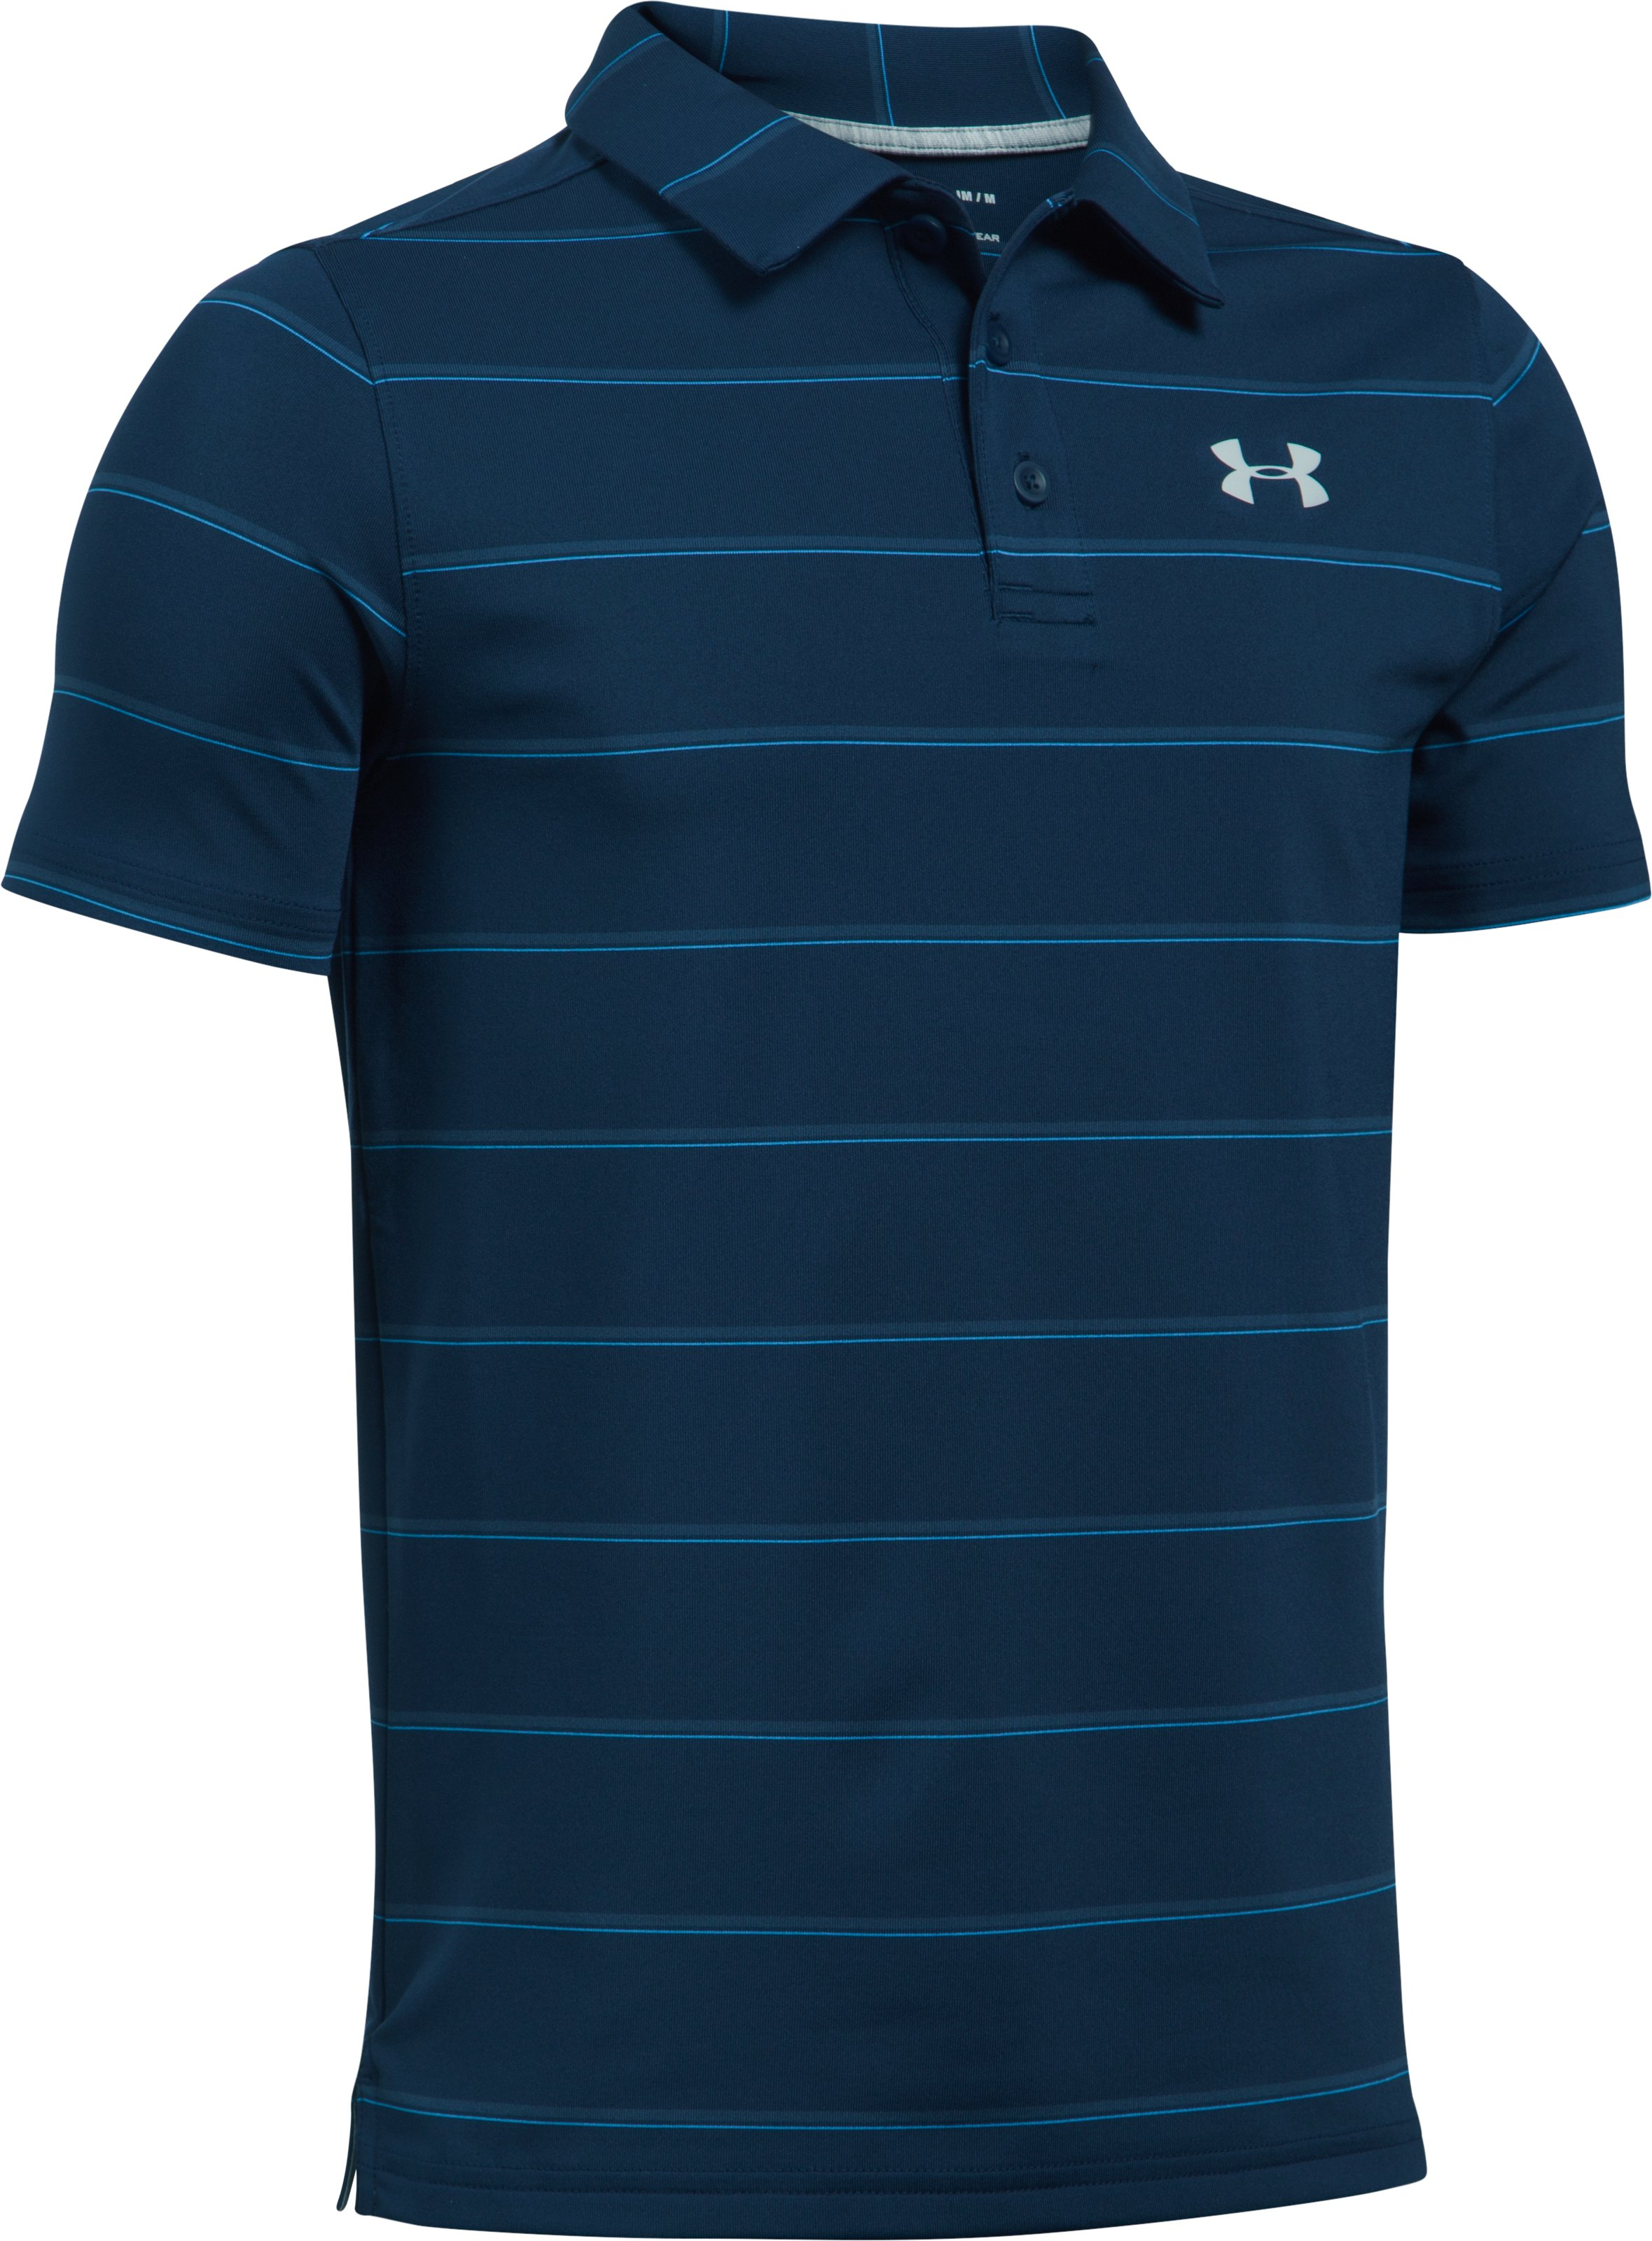 Boys' UA Playoff Stripe Polo, Academy,